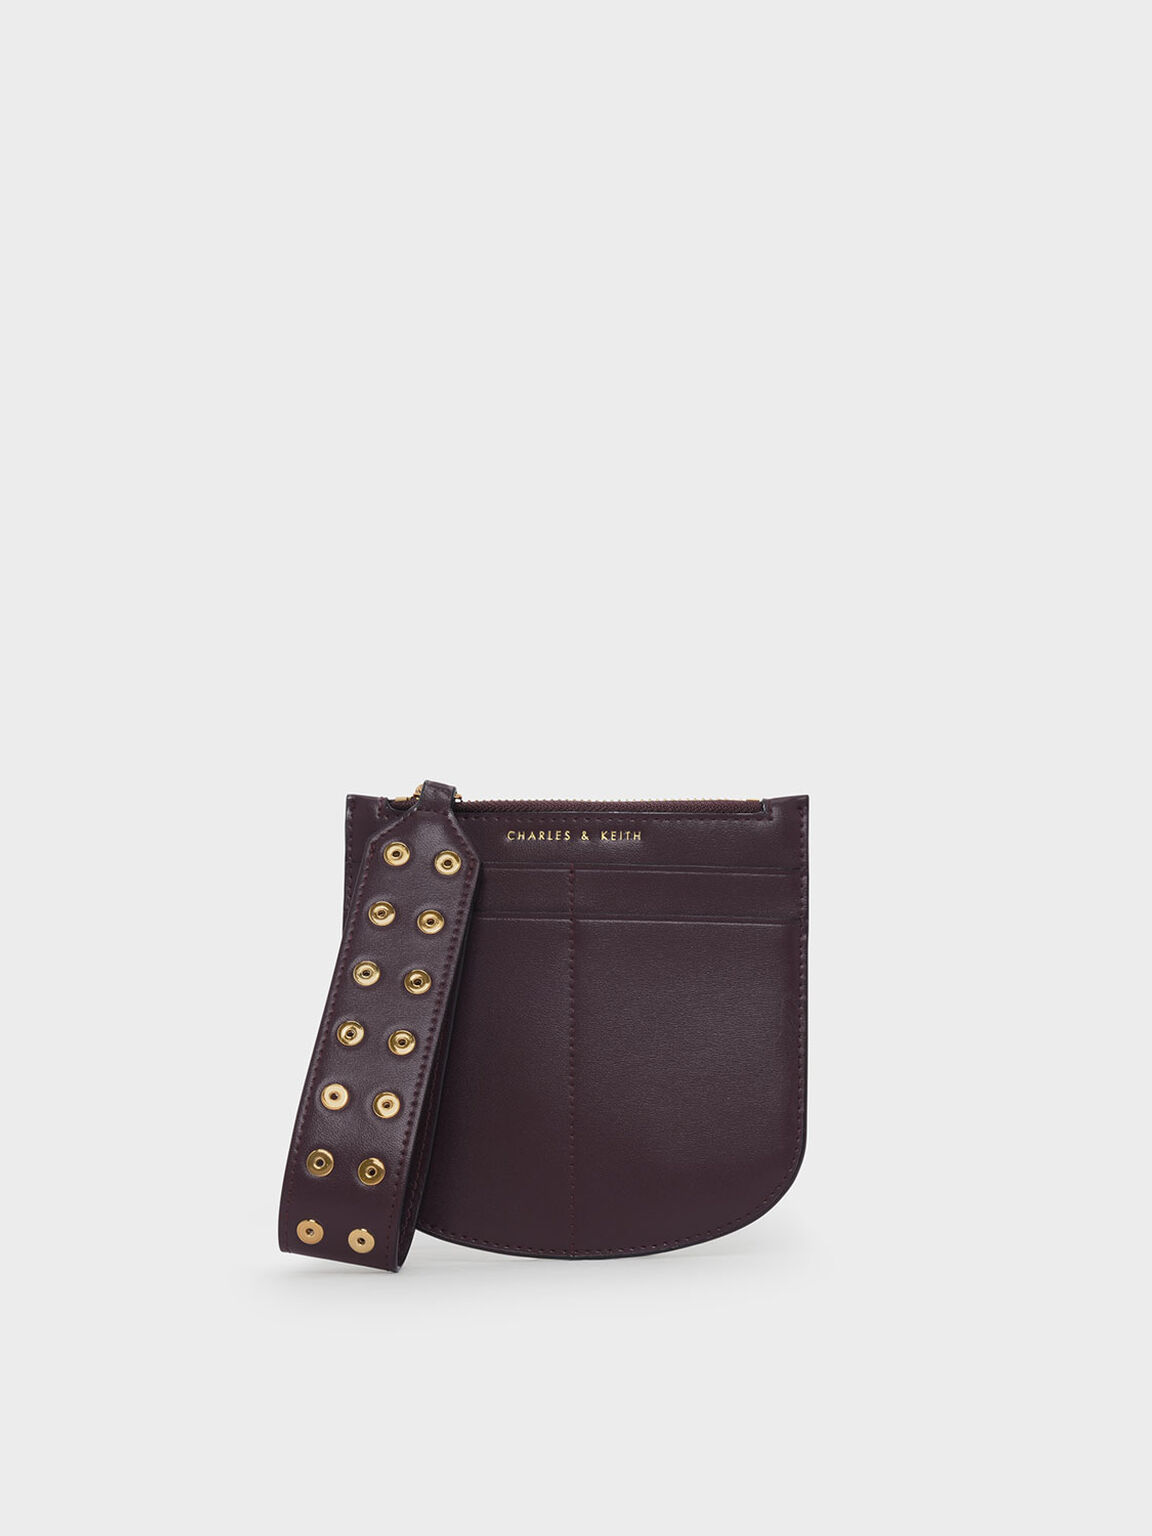 Stud Detail Handle Wristlet, Prune, hi-res